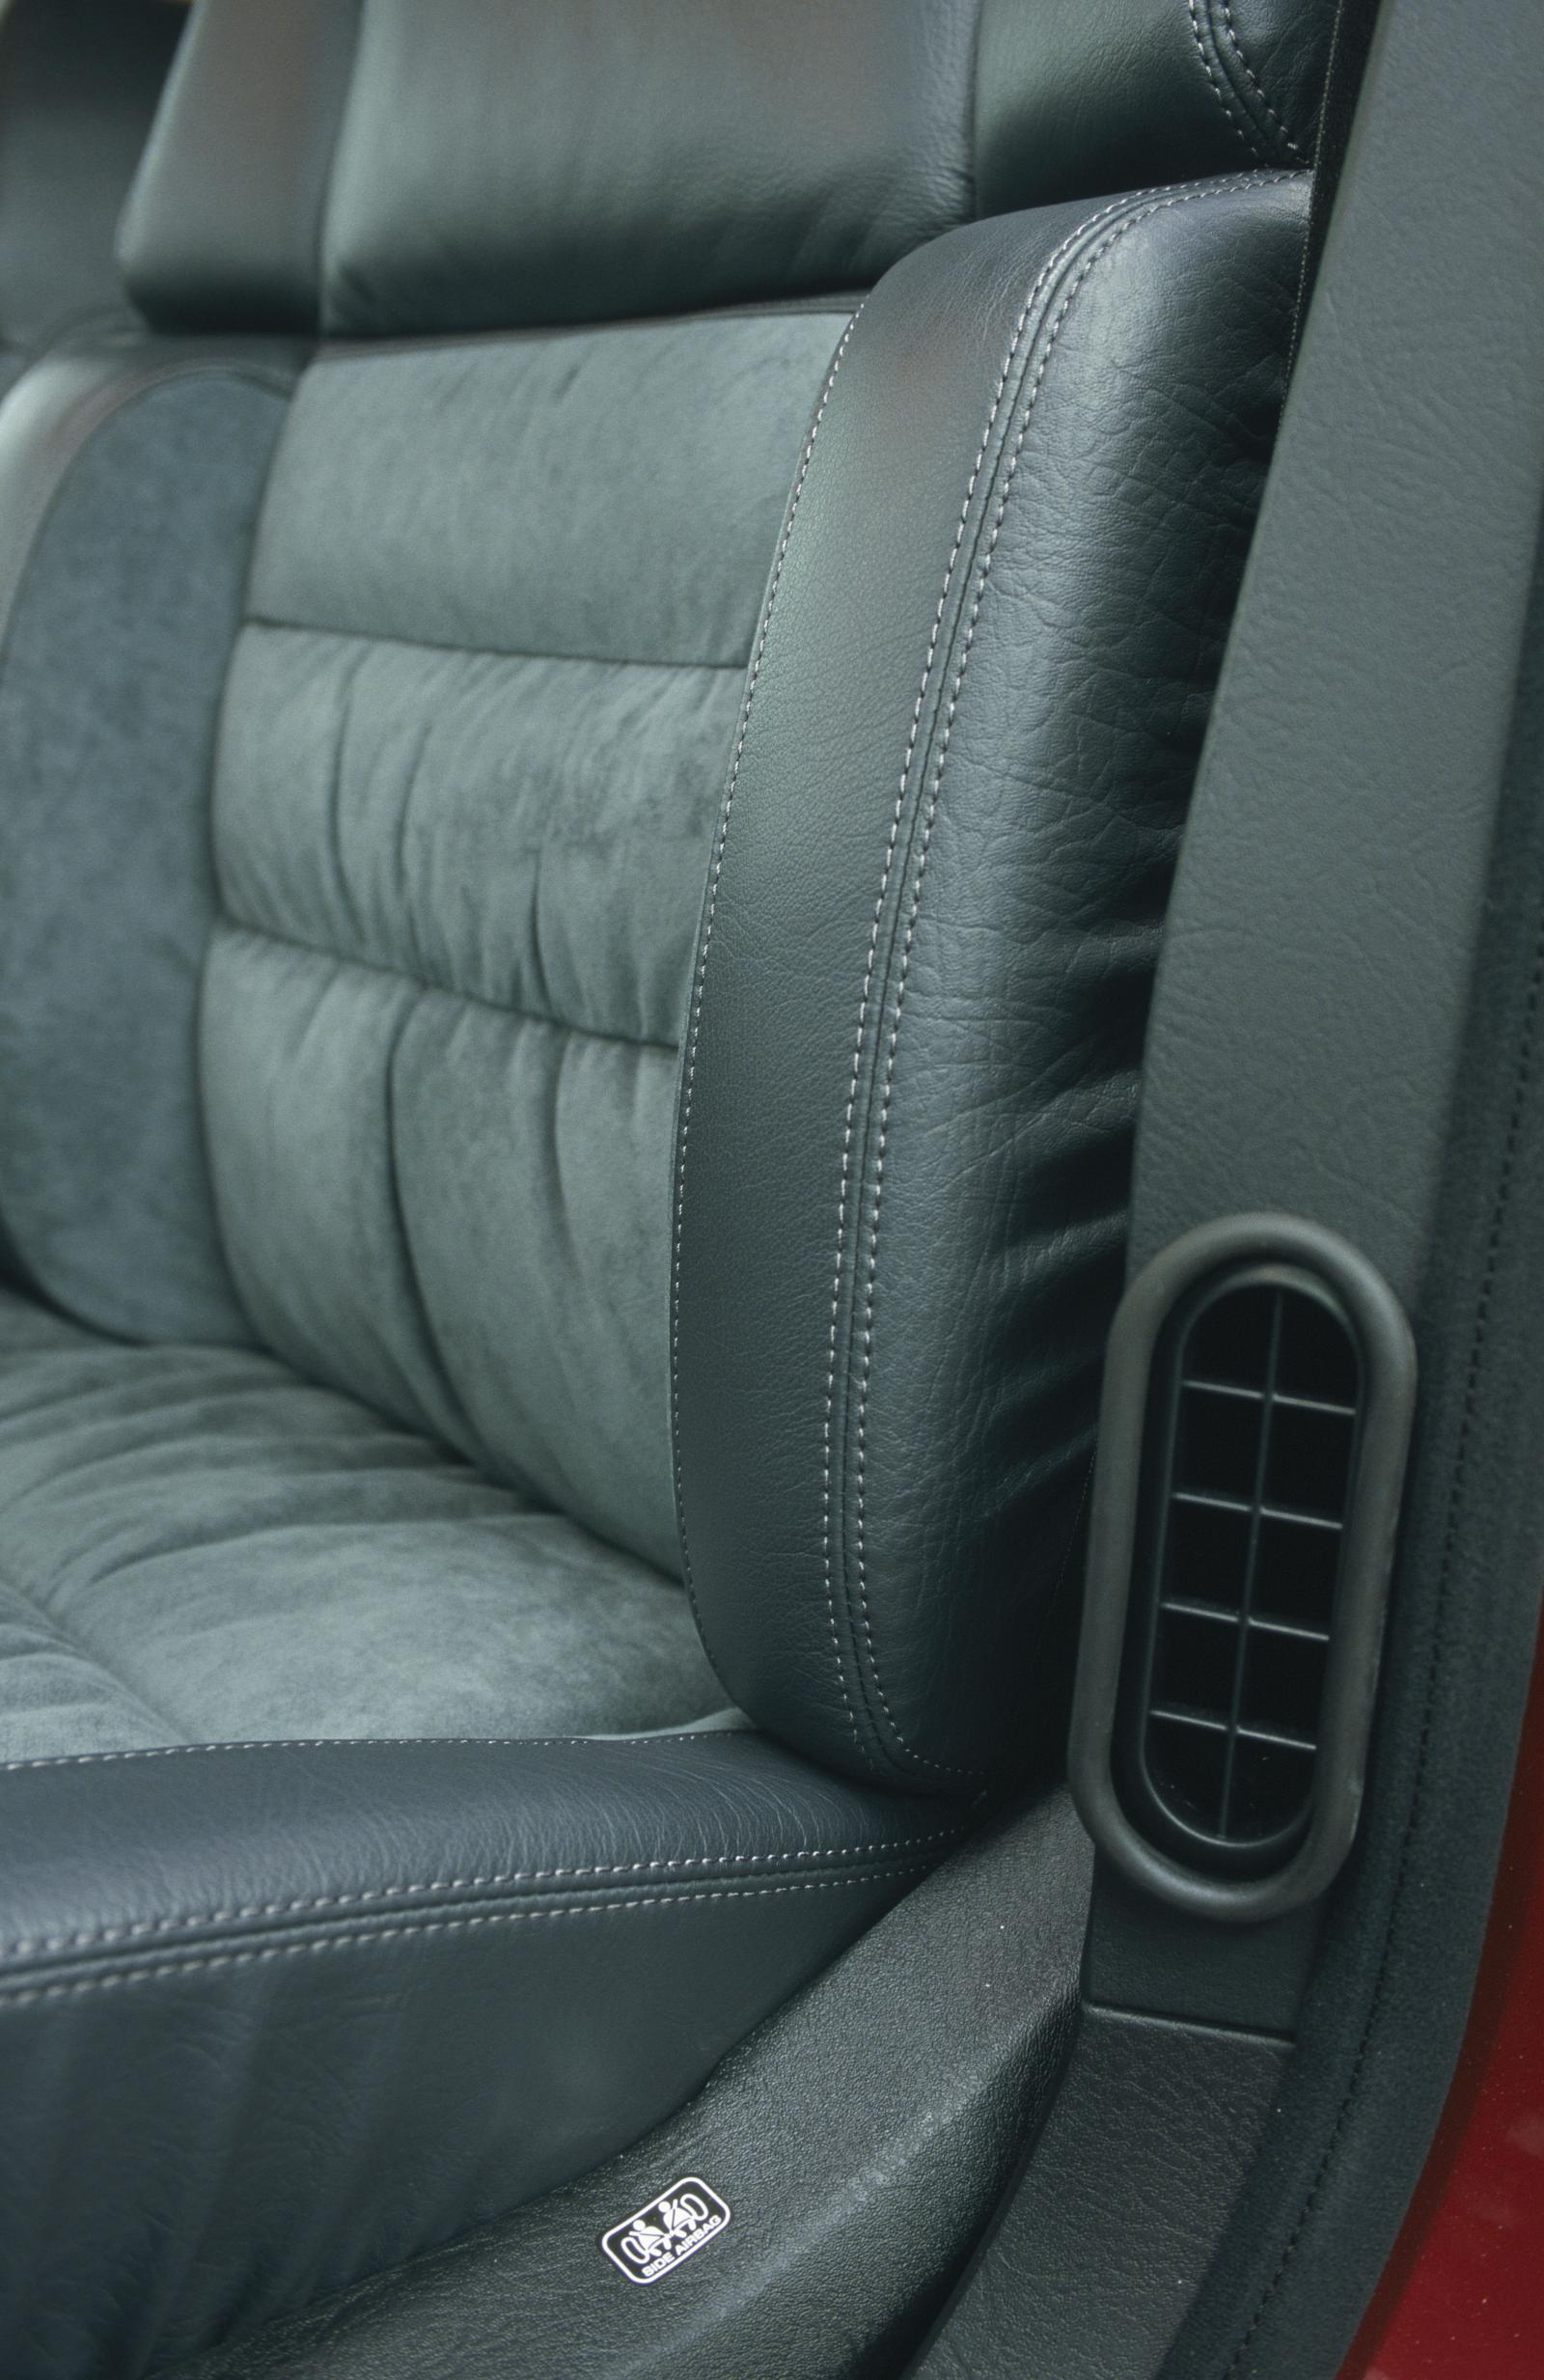 XM air conditioning